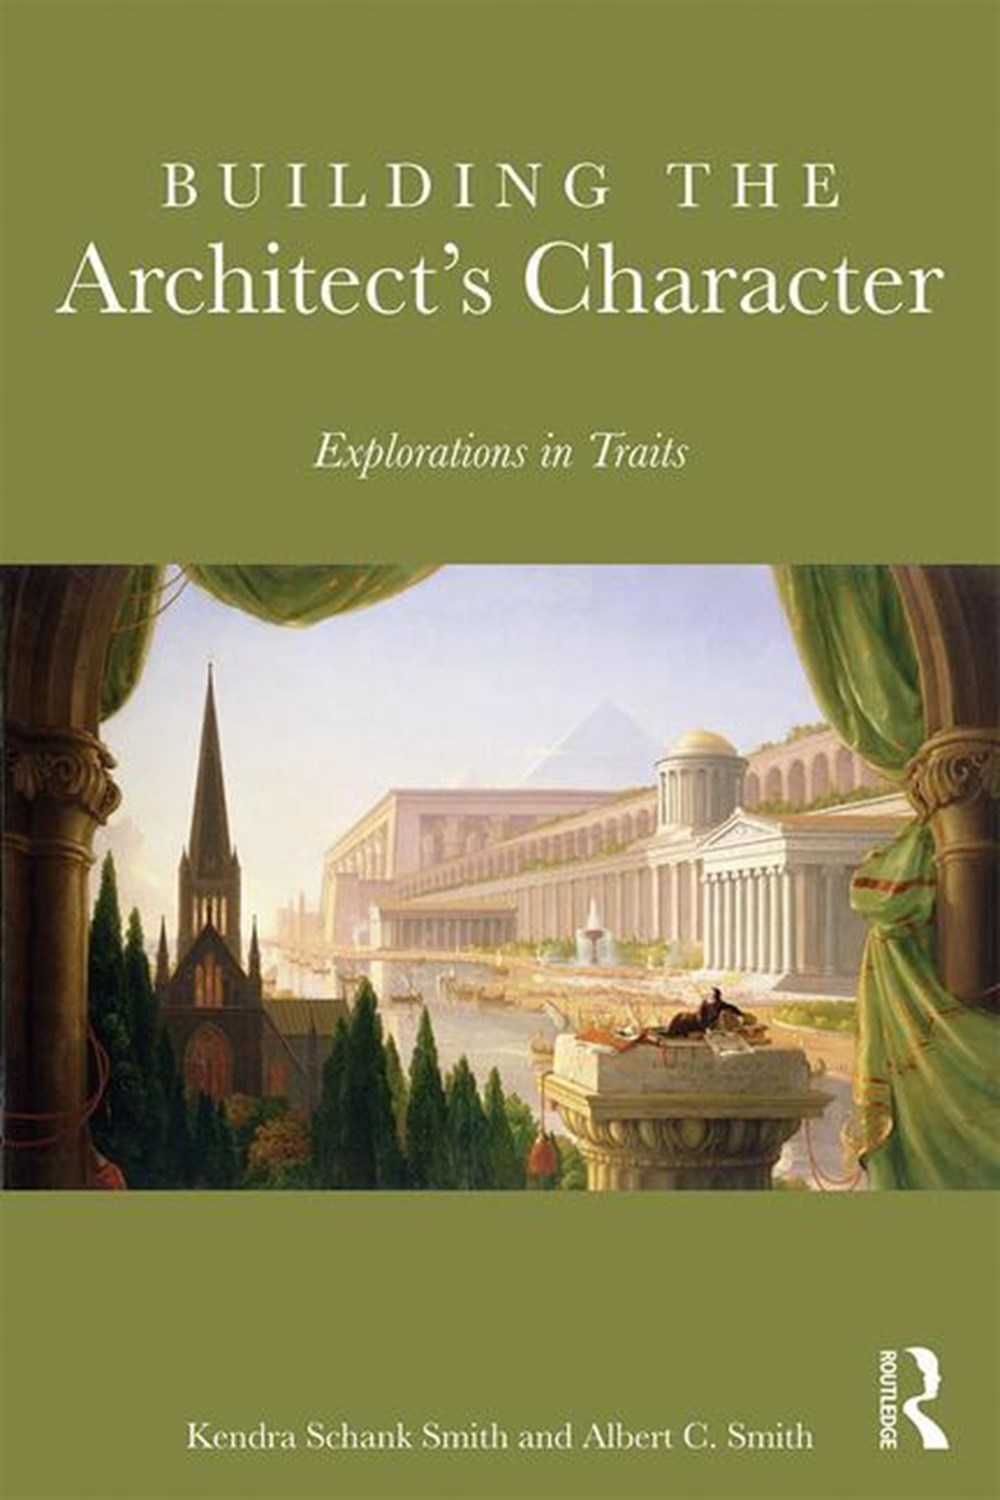 Building the Architect's Character Explorations in Traits